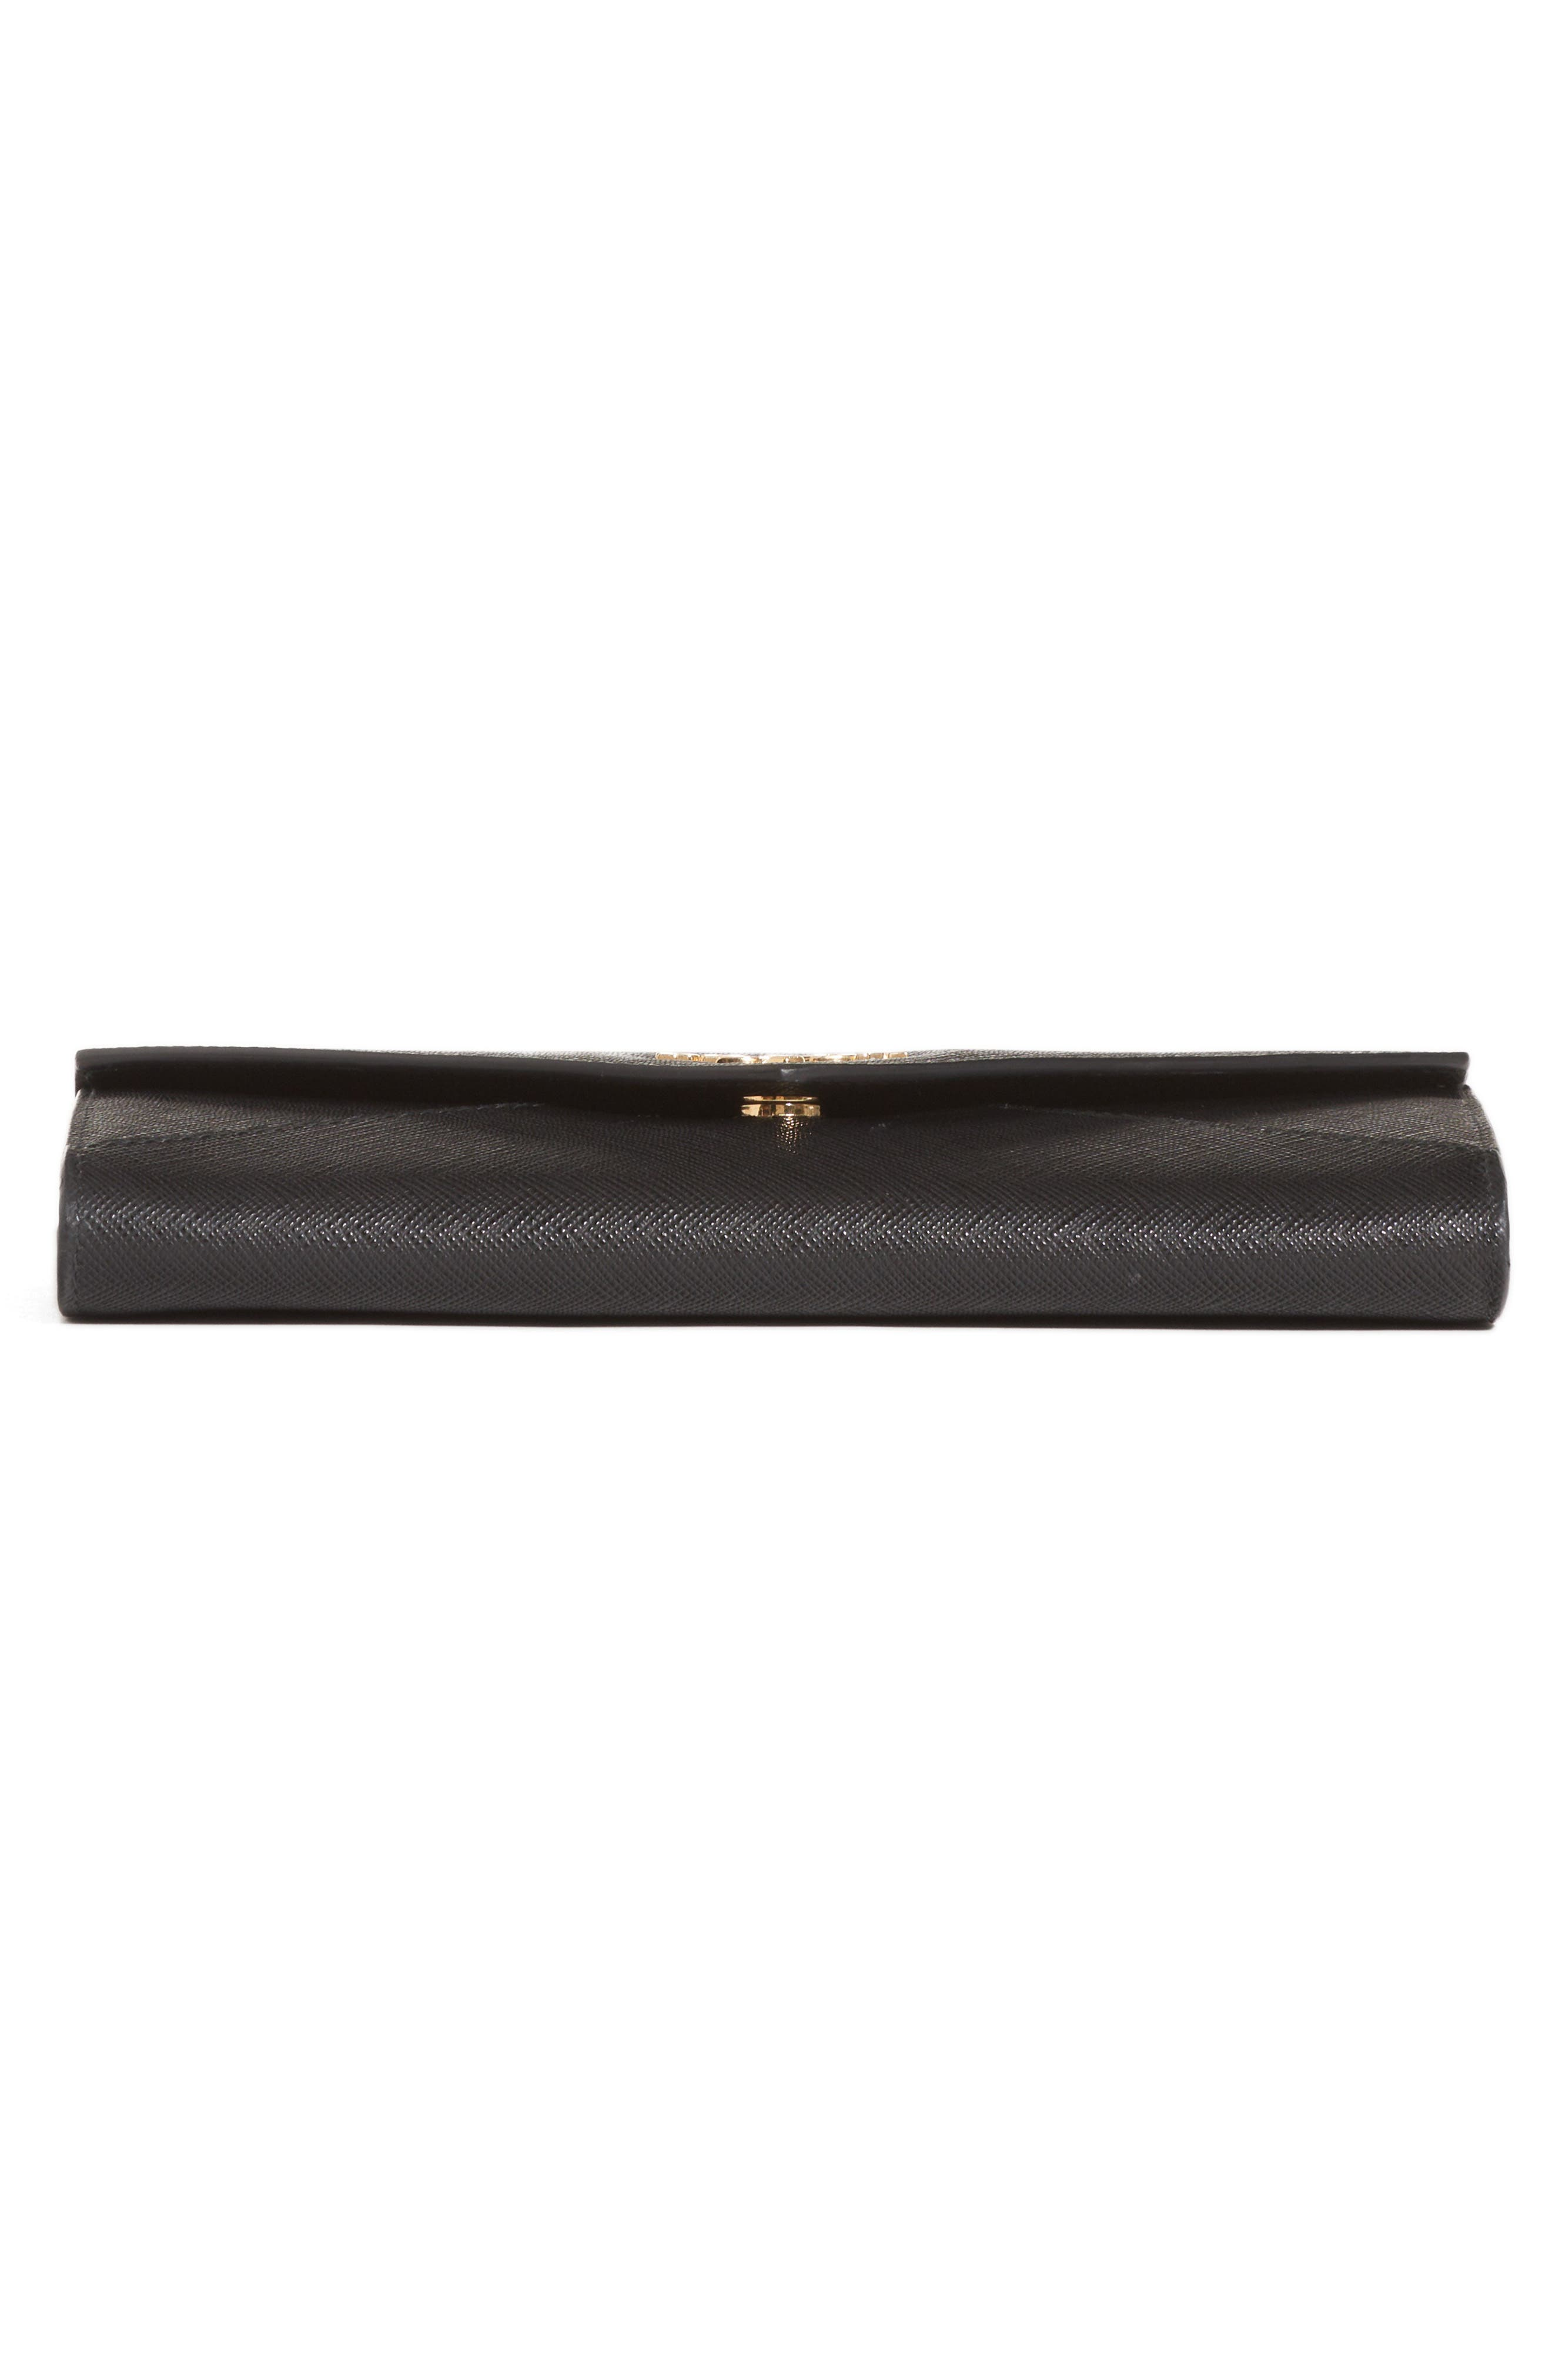 Saffiano Leather Envelope Wristlet,                             Alternate thumbnail 6, color,                             001